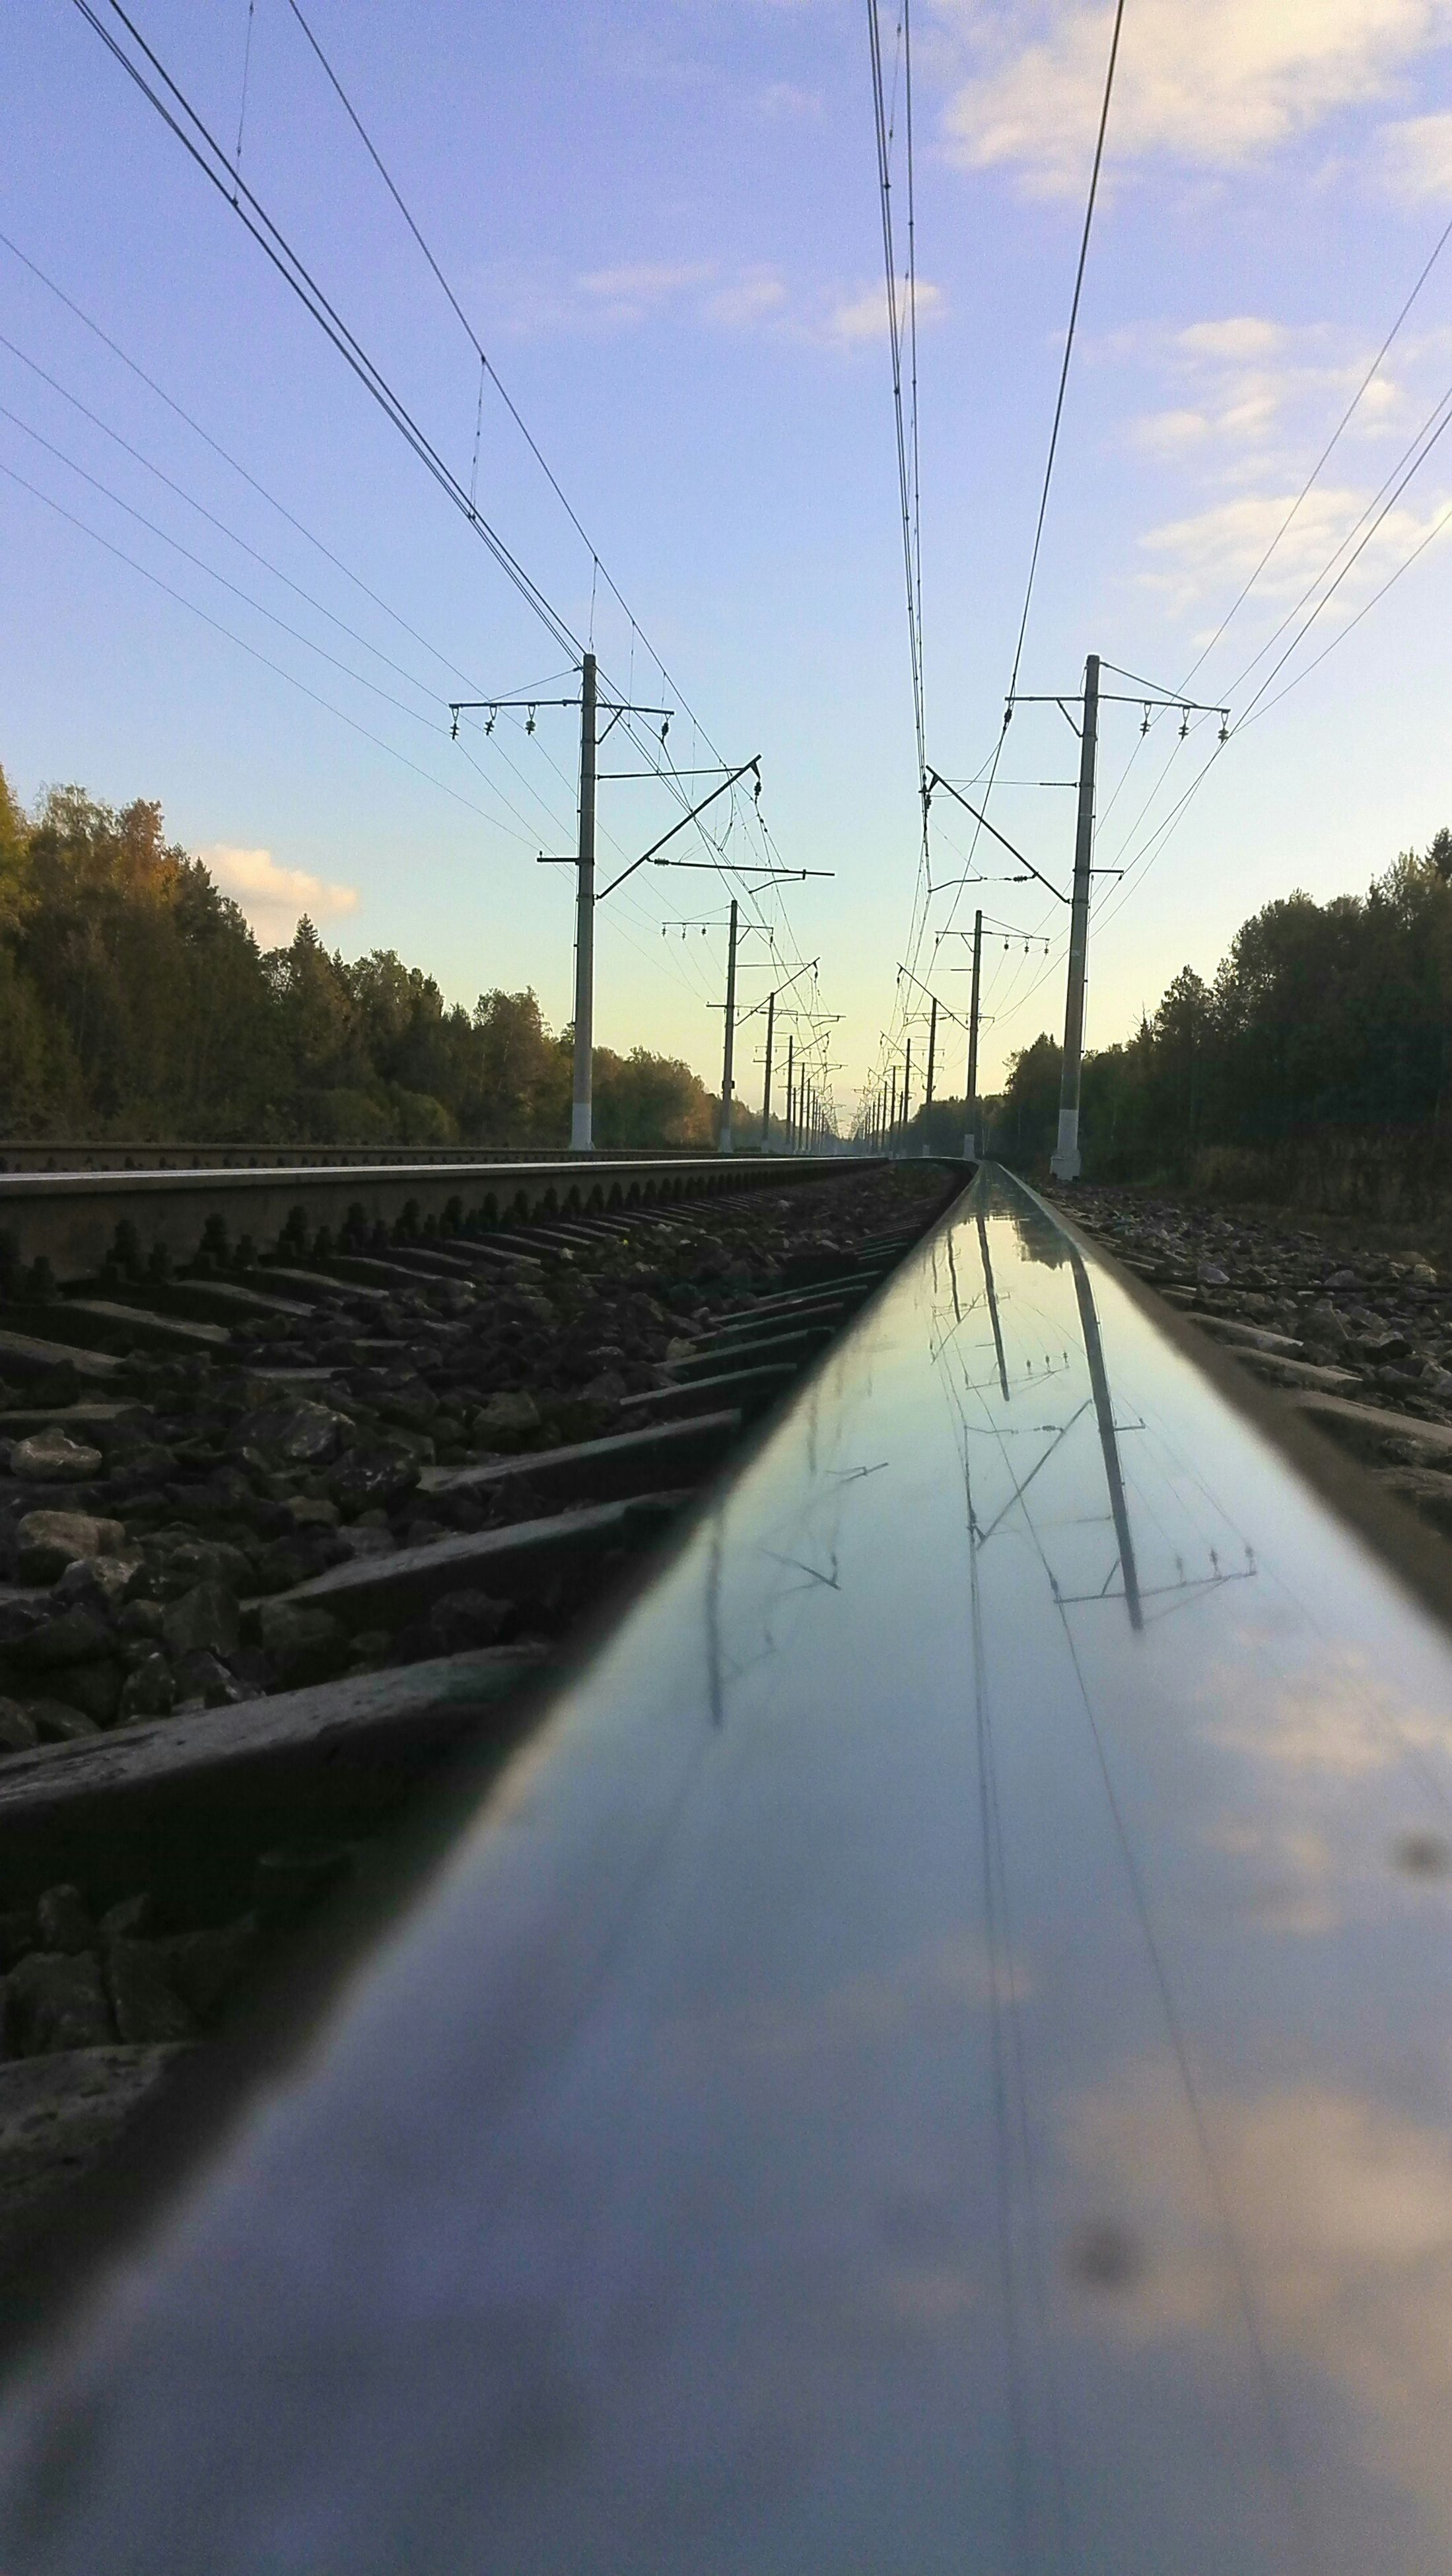 power line, railroad track, electricity pylon, rail transportation, power supply, connection, electricity, transportation, cable, sky, diminishing perspective, the way forward, fuel and power generation, power cable, tree, vanishing point, railway track, public transportation, no people, nature